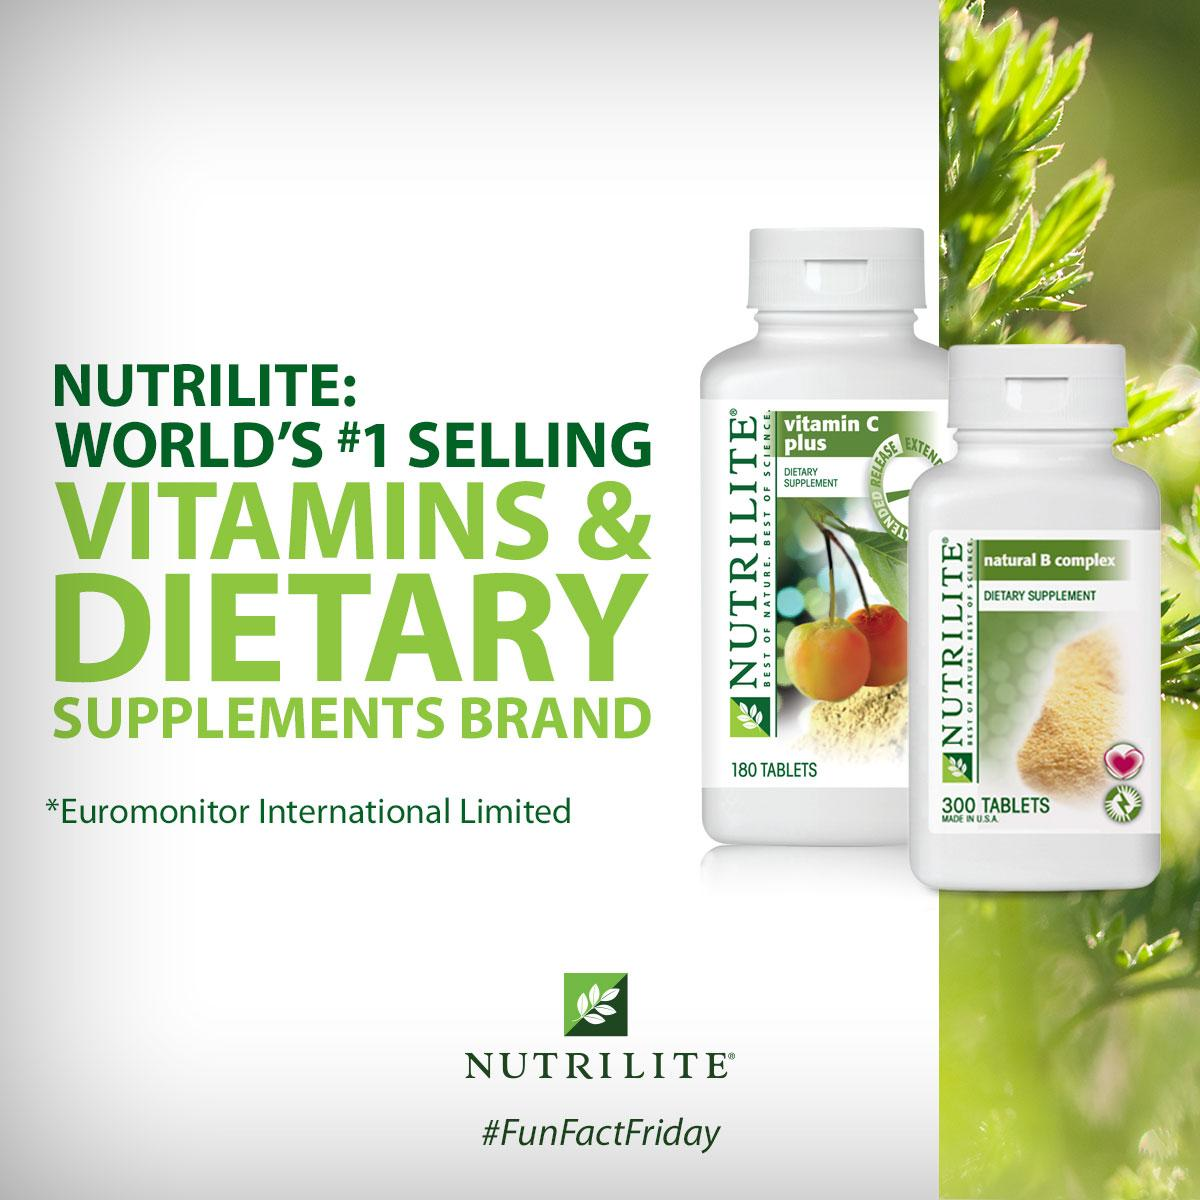 We're No. 1! #Nutrilite is world's top vitamin + dietary supplements brand (http://t.co/PxsJiD9Pv1) #FunFactFriday http://t.co/nJ9SPI8q9e